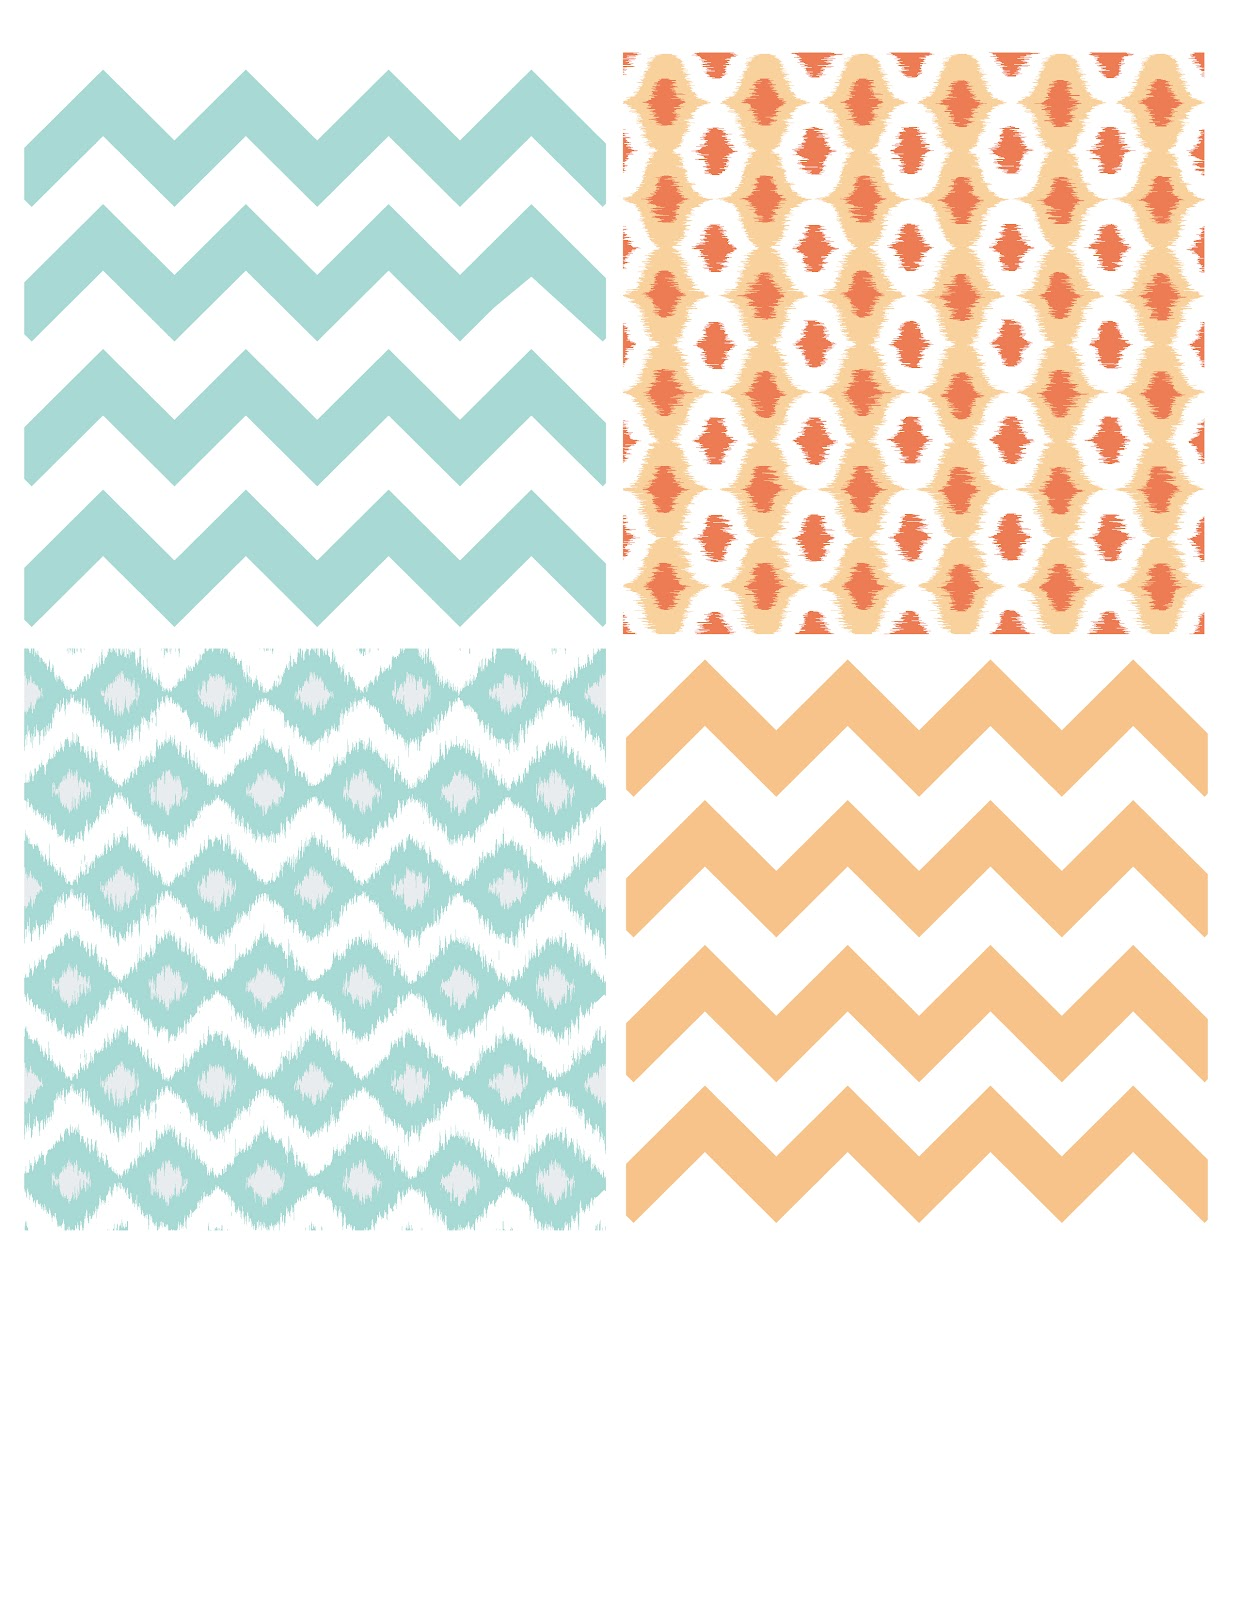 graphic relating to Printable Coasters named FREEBIES // COASTER PRINTABLES - Oh As a result Beautiful Blog site